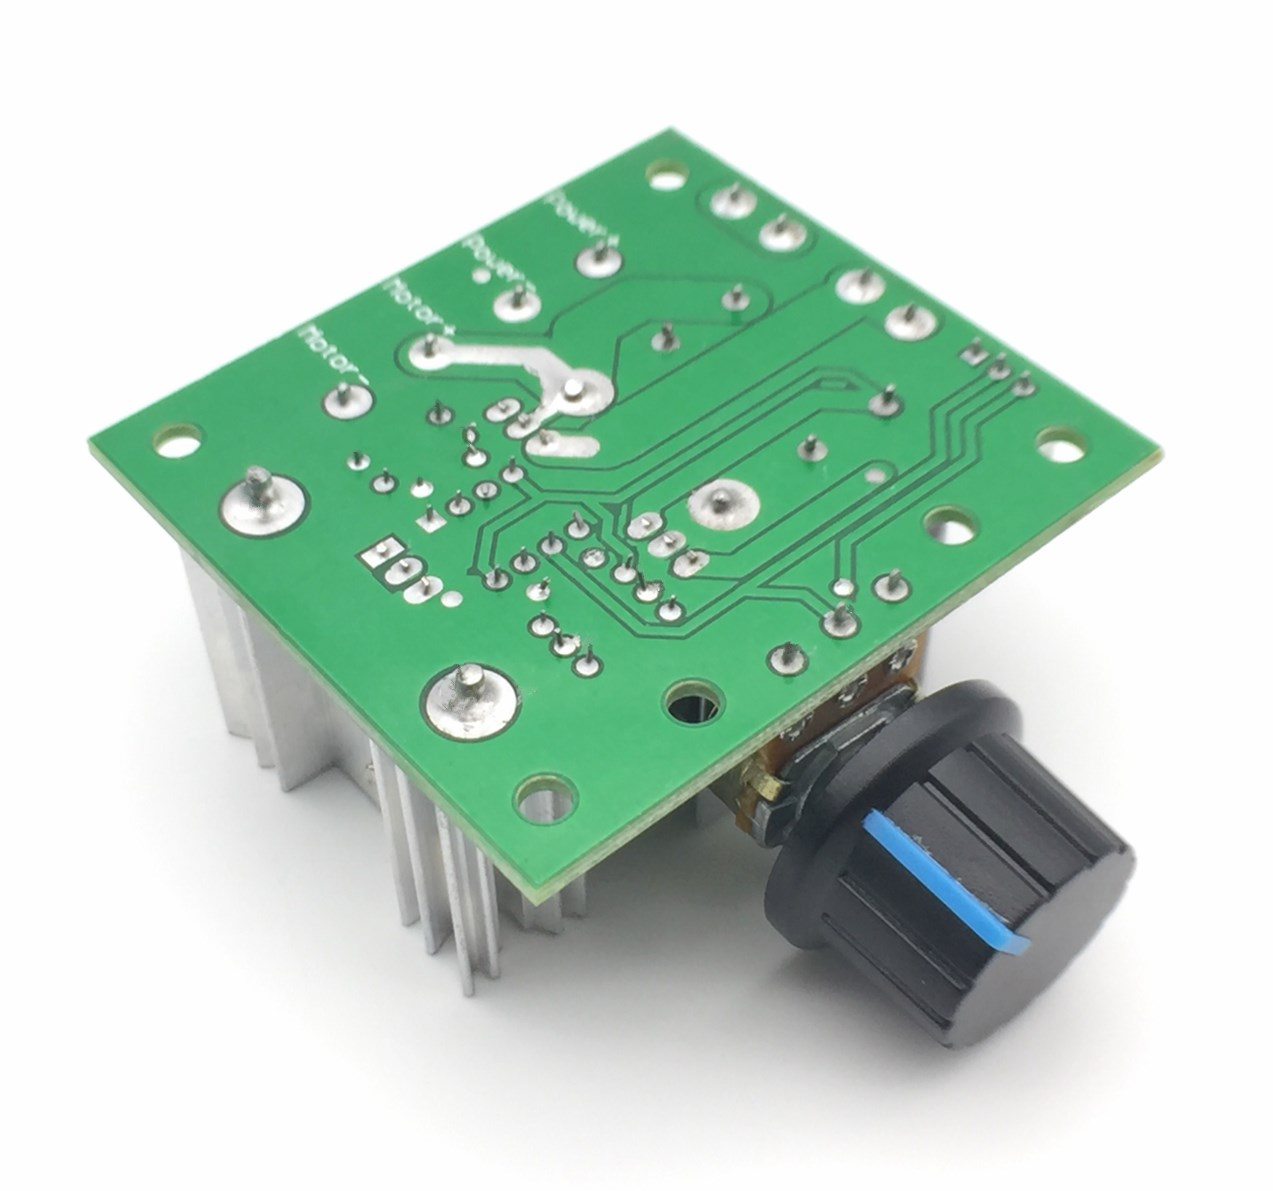 Width Modulation Dc 12v 40v 10a Pulse Pwm Motor Speed Control Is A Circuit To Uses Switch New